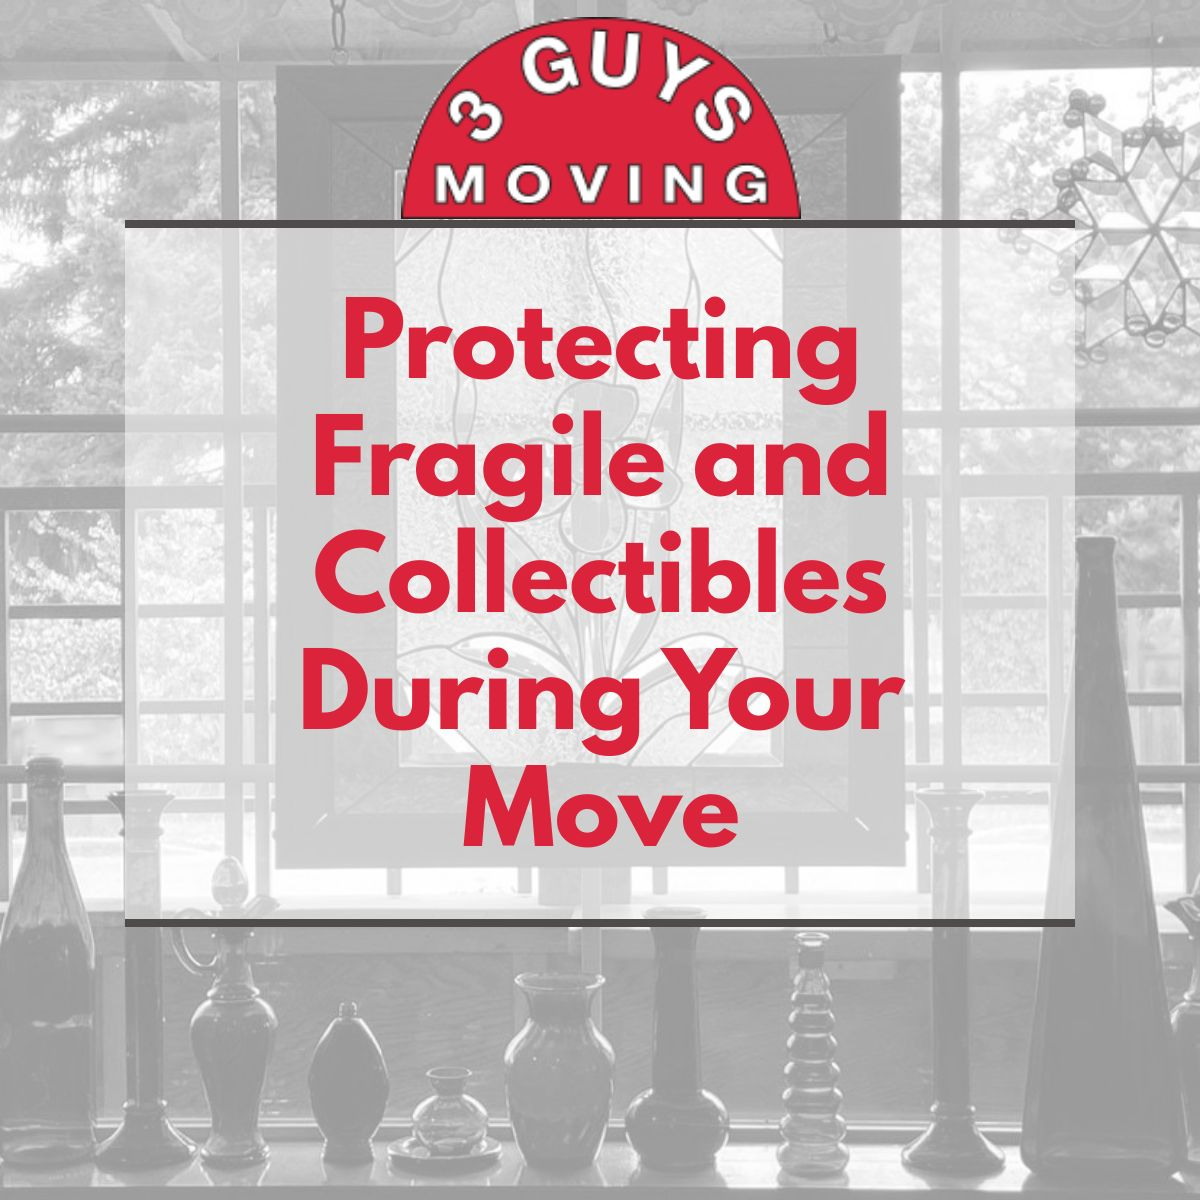 Protecting Fragile and Collectibles - Protecting Fragile and Collectibles During Your Move